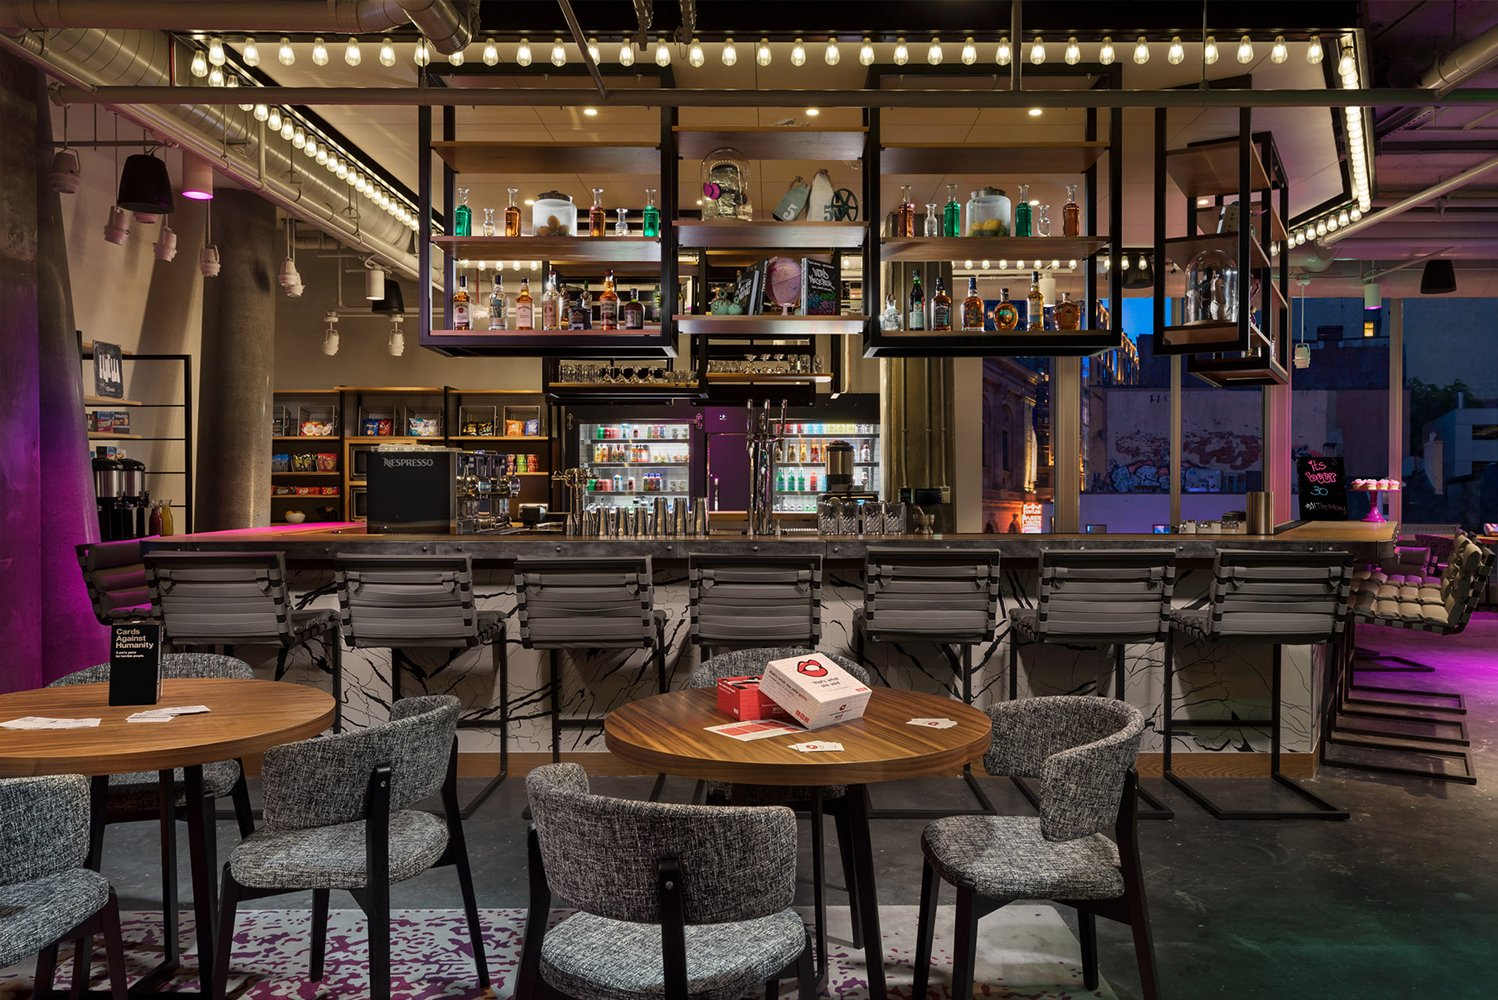 Designed by Boston's Group One, Moxy Boston Downtown's industrial chic design pays homage to the surrounding Theater District.